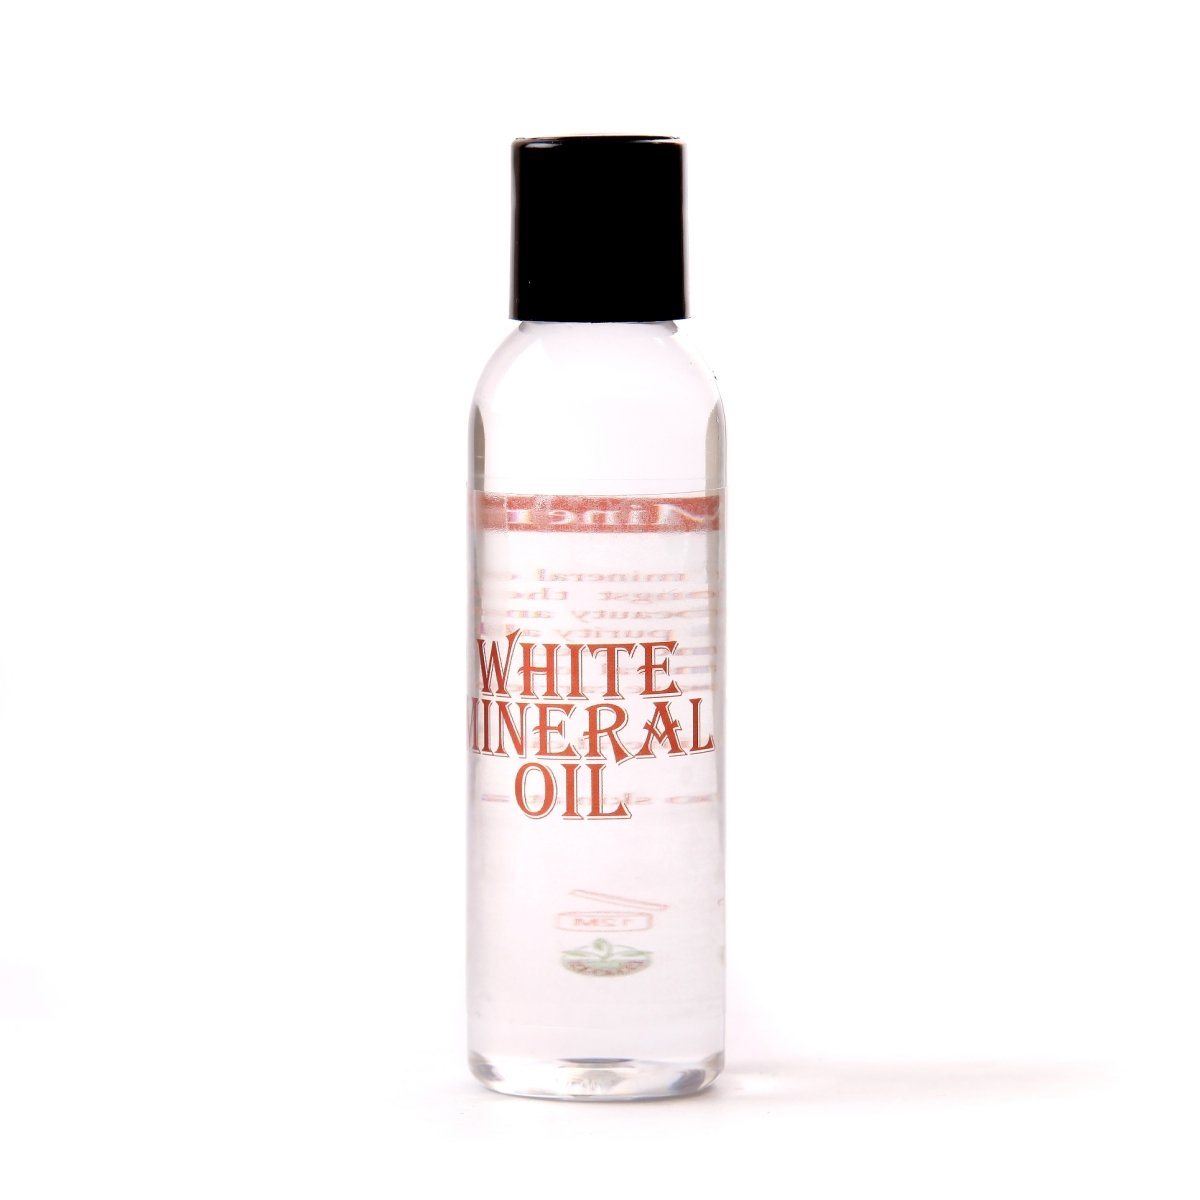 White Mineral Carrier Oil - Mystic Moments UK